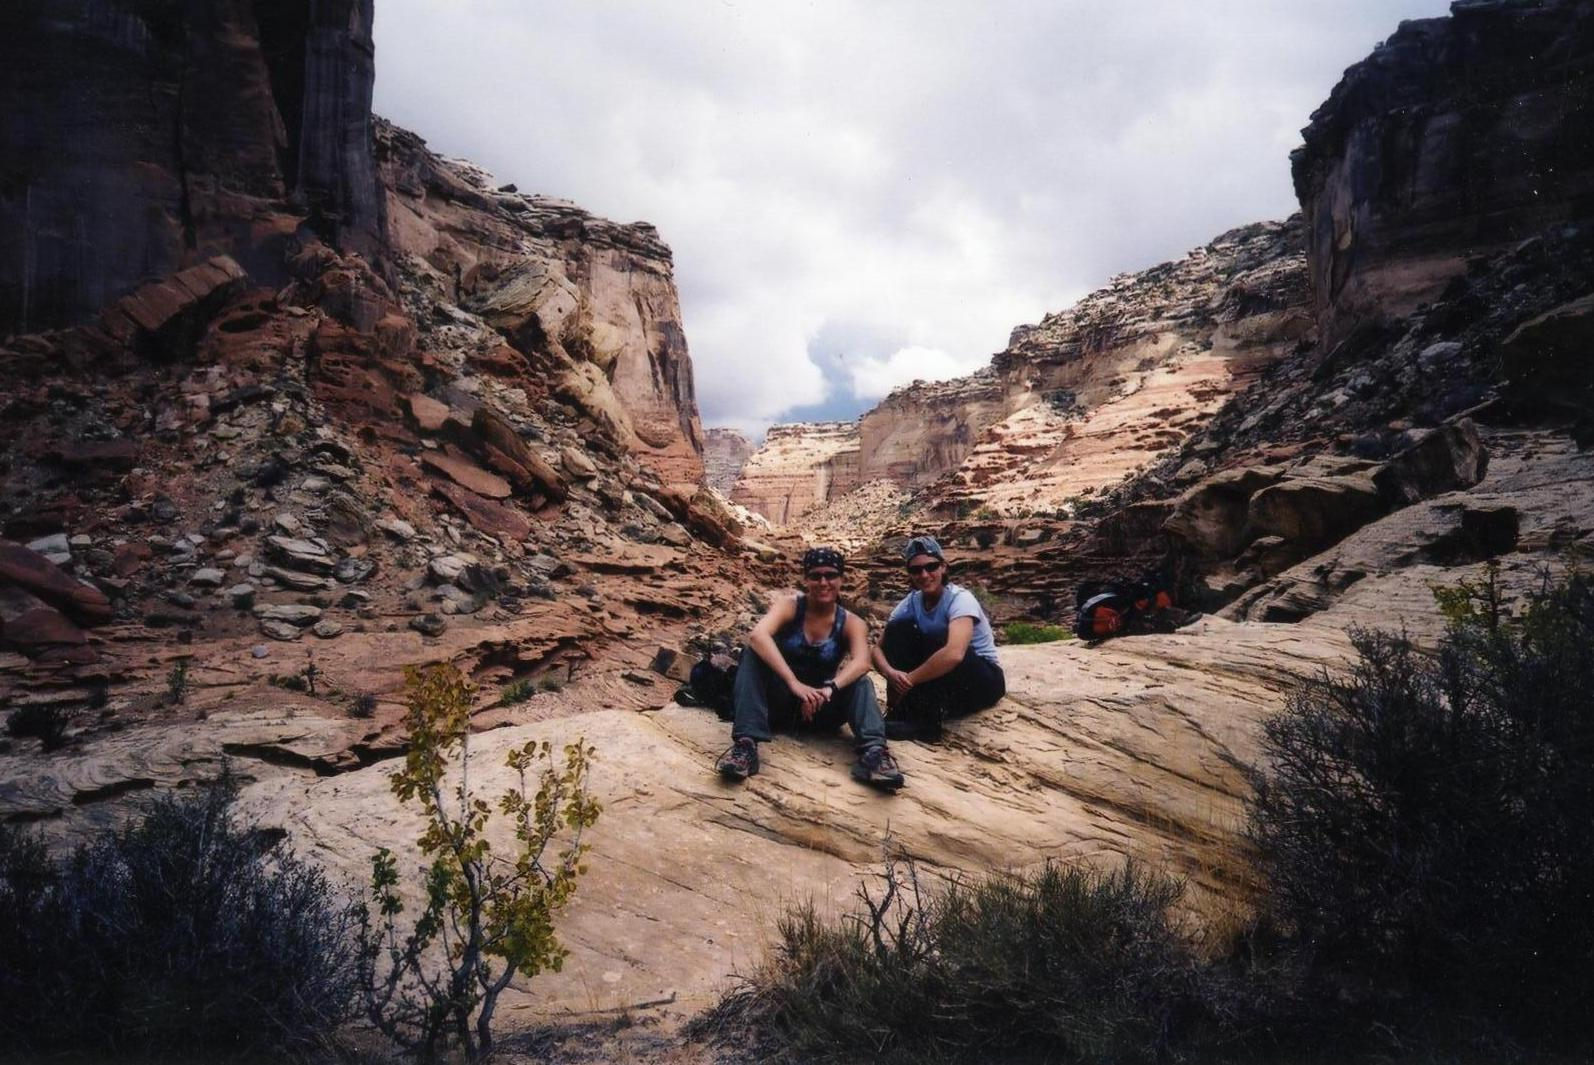 Camping with friends in the San Rafael Swell area in Utah. Here we've stopped for a rest during our day hike through one of the local canyons.